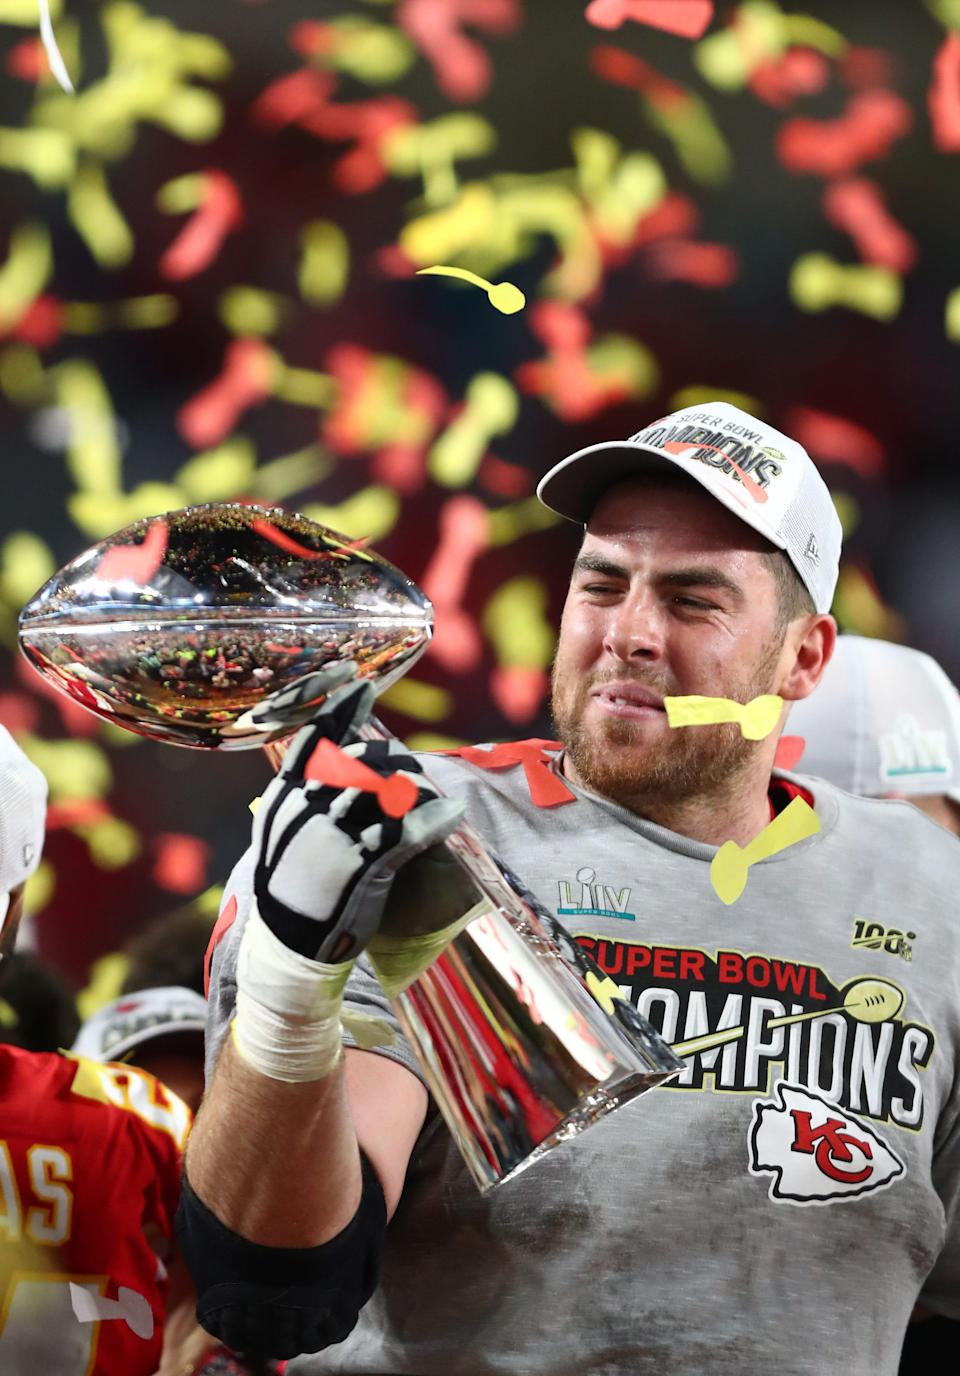 Feb 2, 2020; Miami Gardens, Florida, USA; Kansas City Chiefs tackle Eric Fisher (72) celebrates with the Vince Lombardi Trophy after defeating the San Francisco 49ers in Super Bowl LIV at Hard Rock Stadium. Mandatory Credit: Mark J. Rebilas-USA TODAY Sports